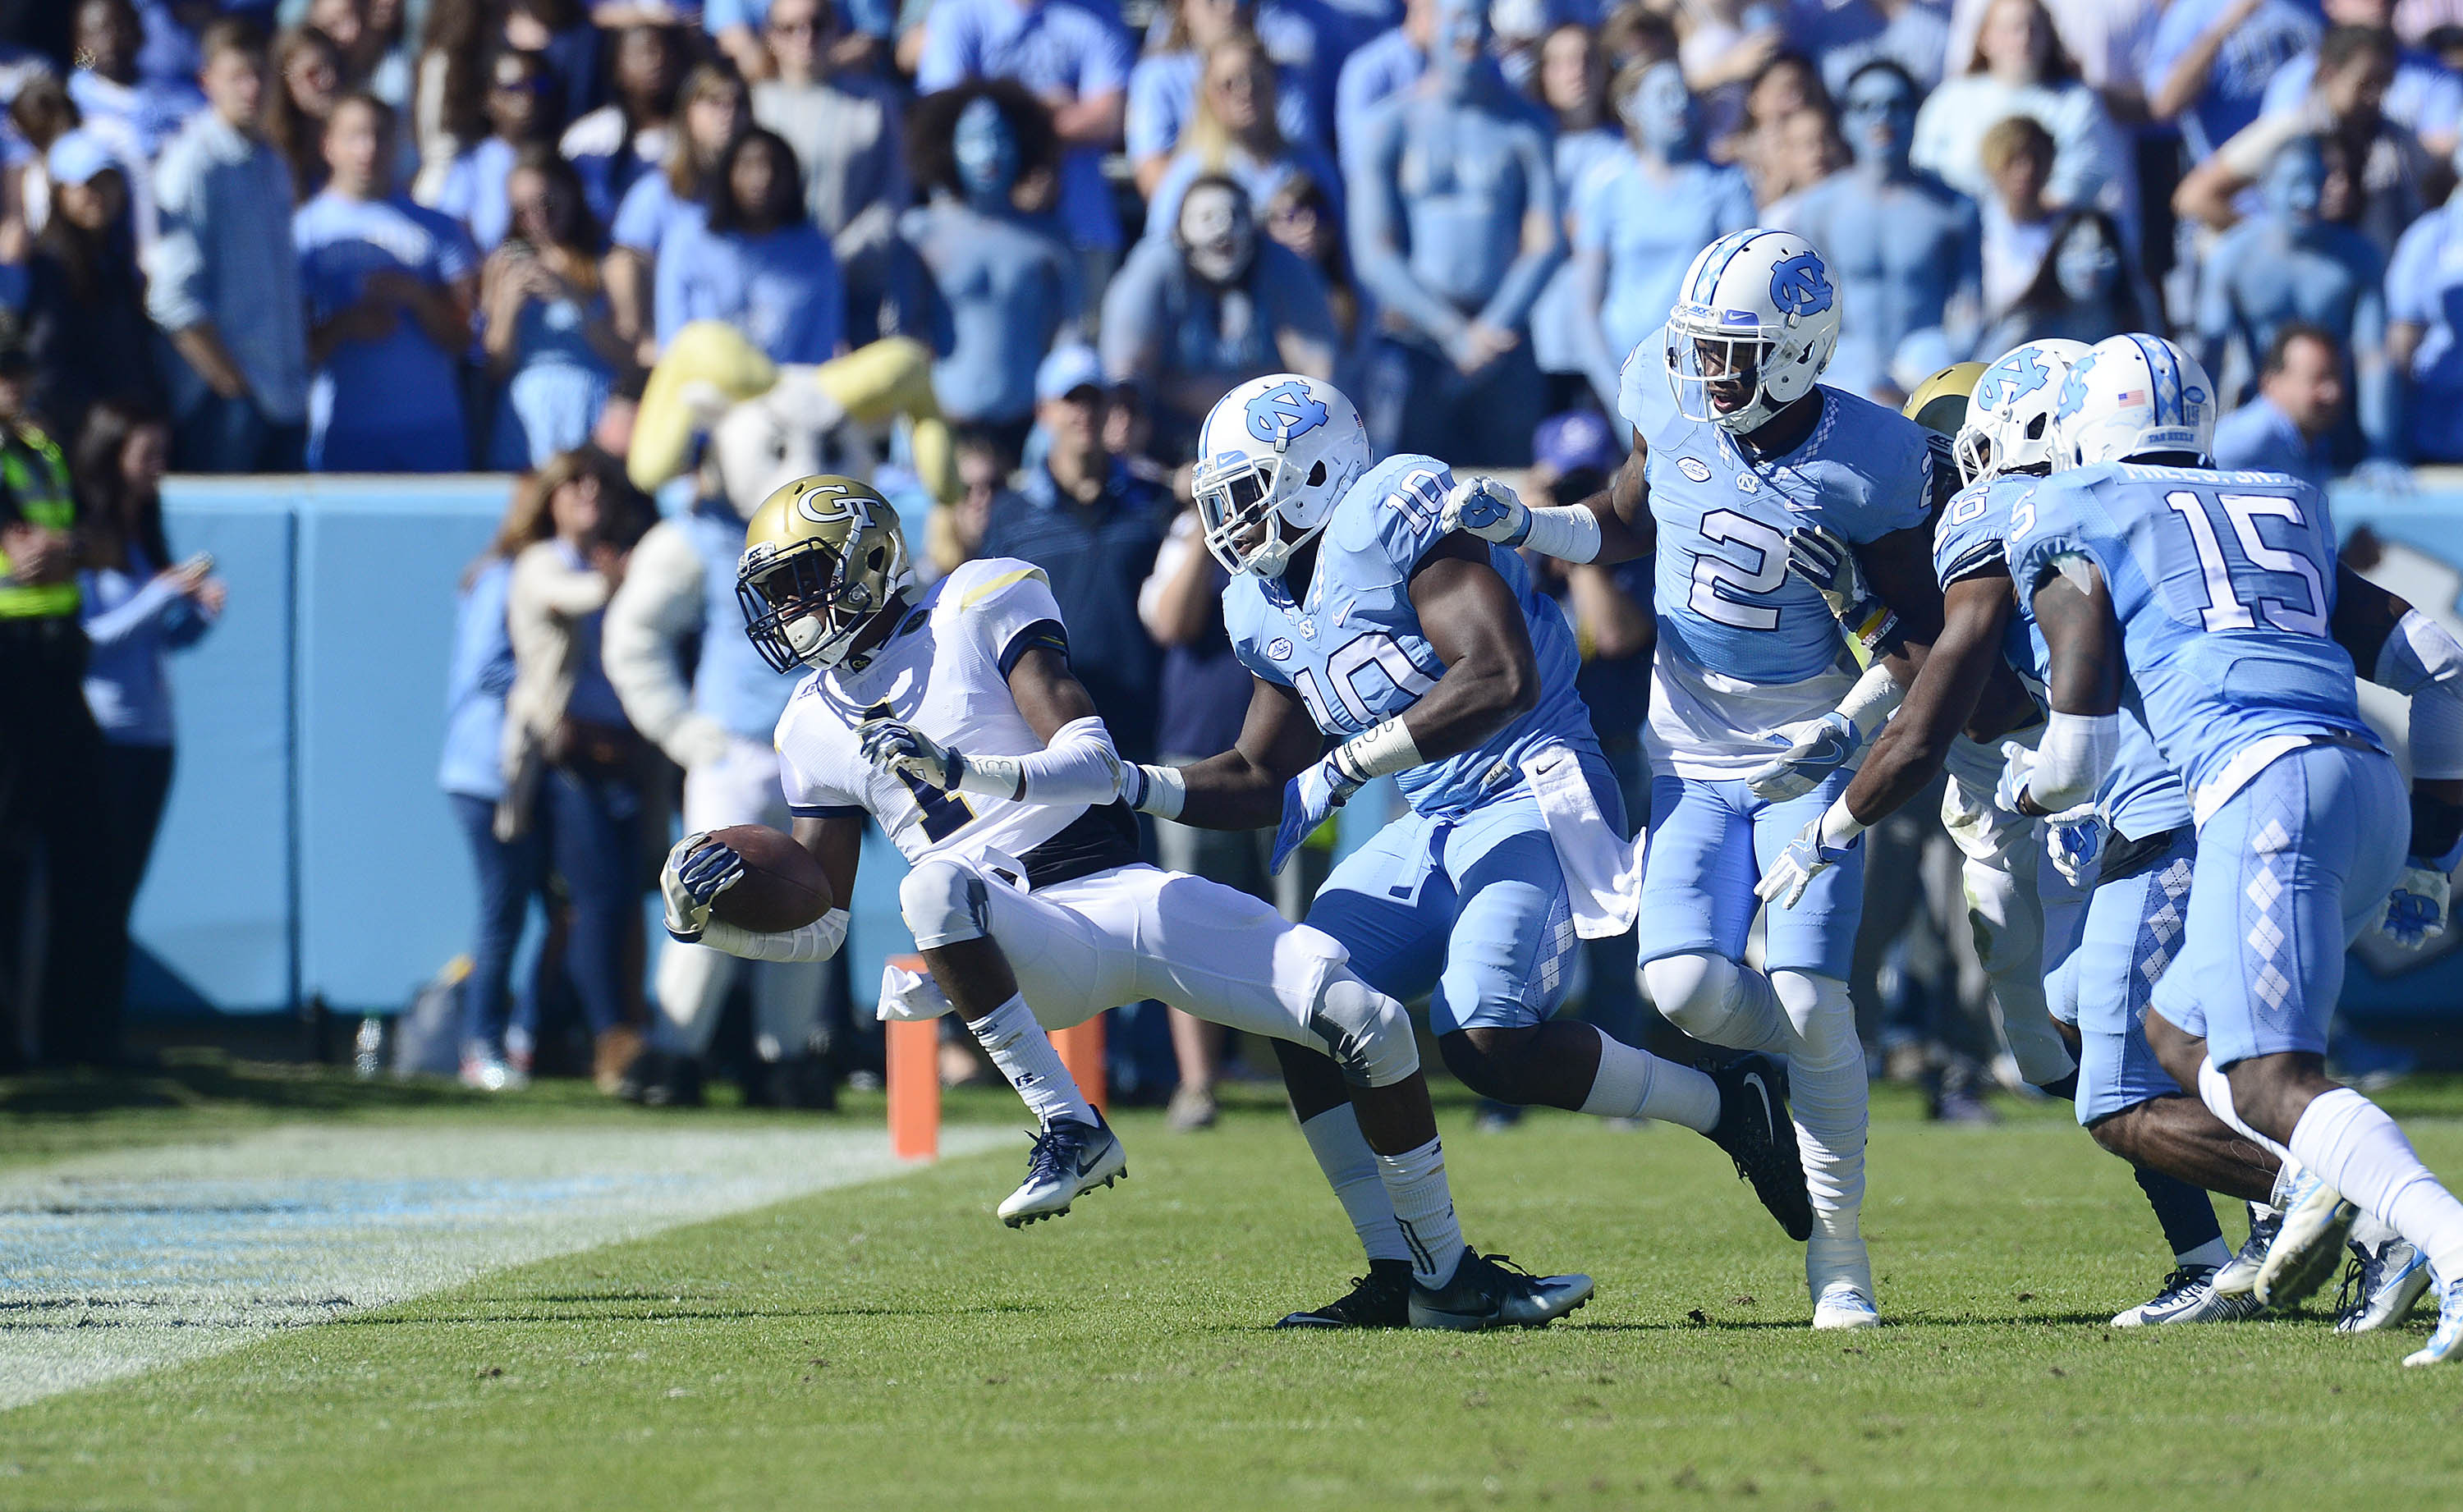 Photo 5University of North Carolina Football v Georgia TechKenan Football StadiumChapel Hill, NCSaturday, November 5, 2016